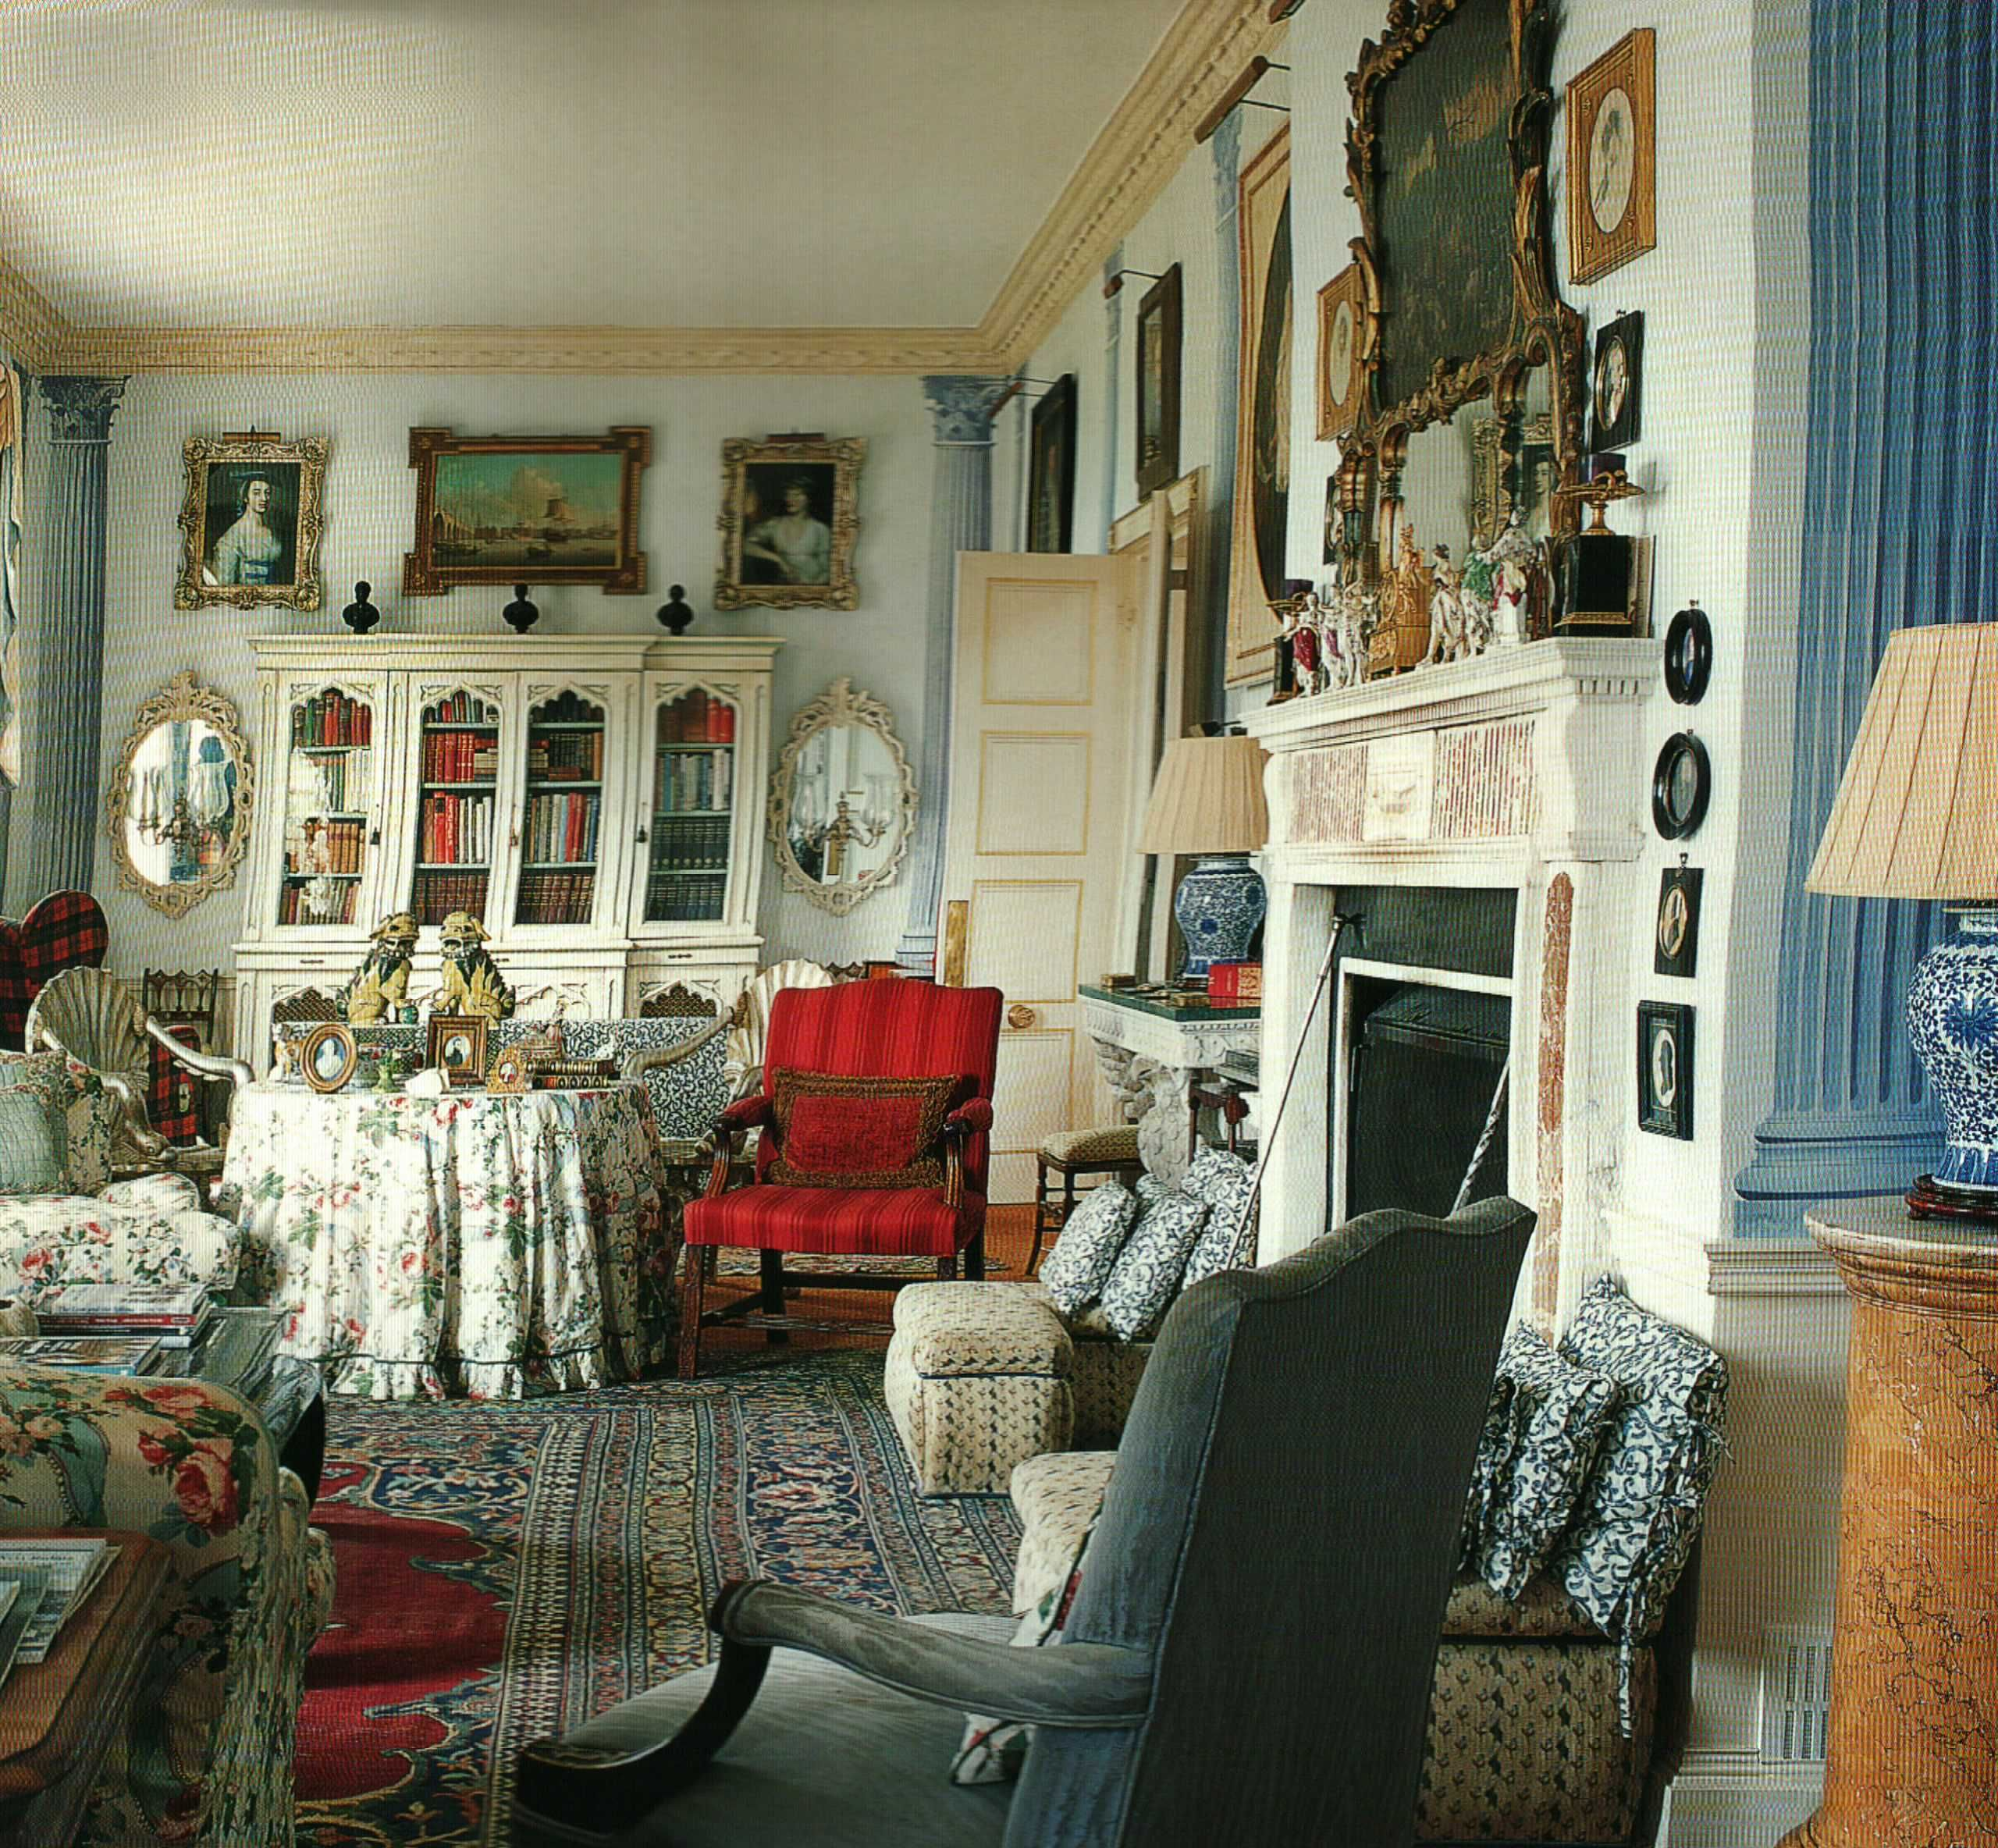 Traditional English Country Sitting Room: 1000+ Images About English Country House On Pinterest